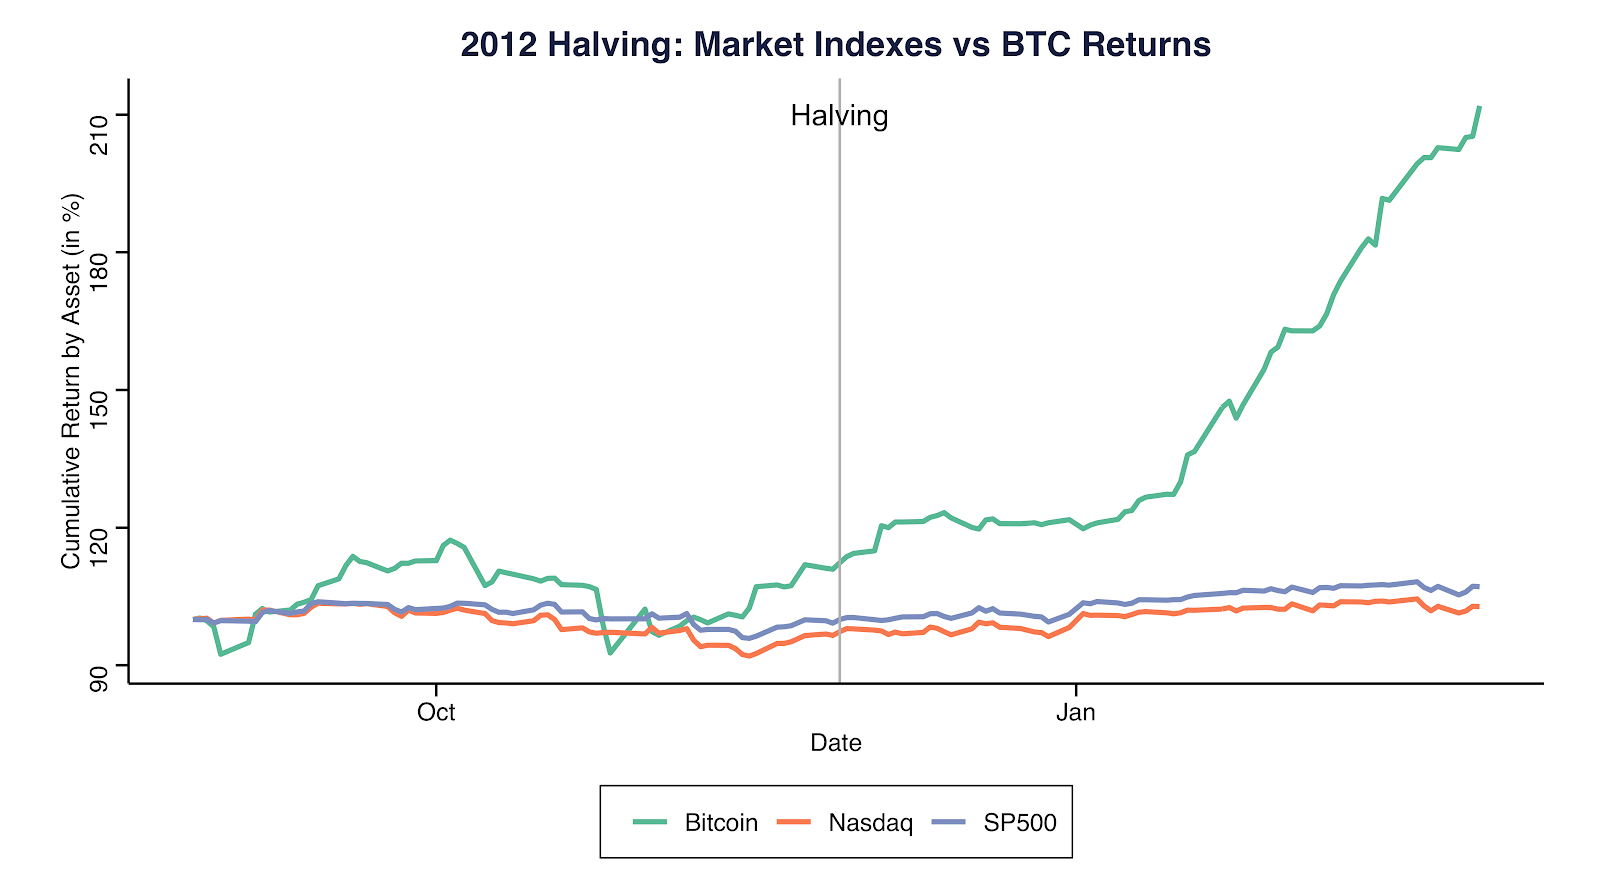 2012 Halving: Market indexes vs. BTC returns. Source: Coinmetrics.io